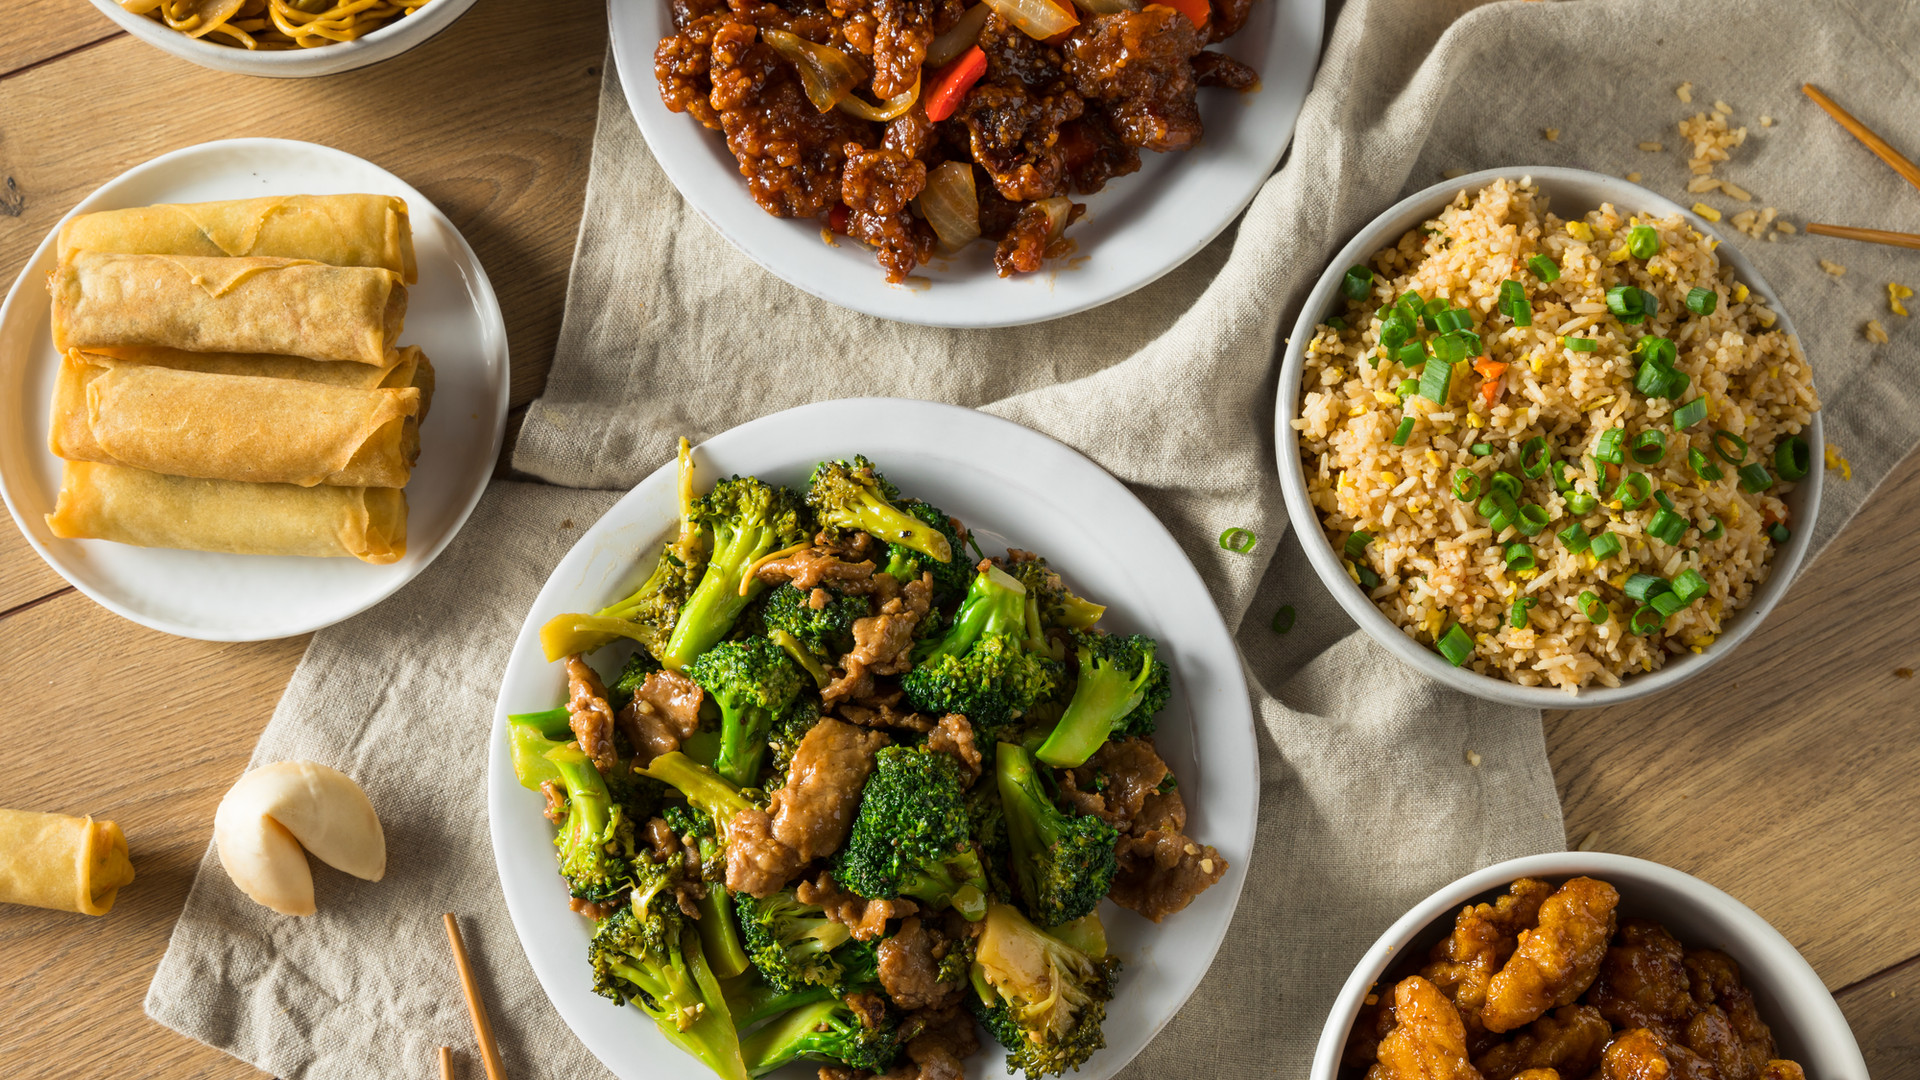 spicy-chinese-take-out-food-PHJY2R3.jpg